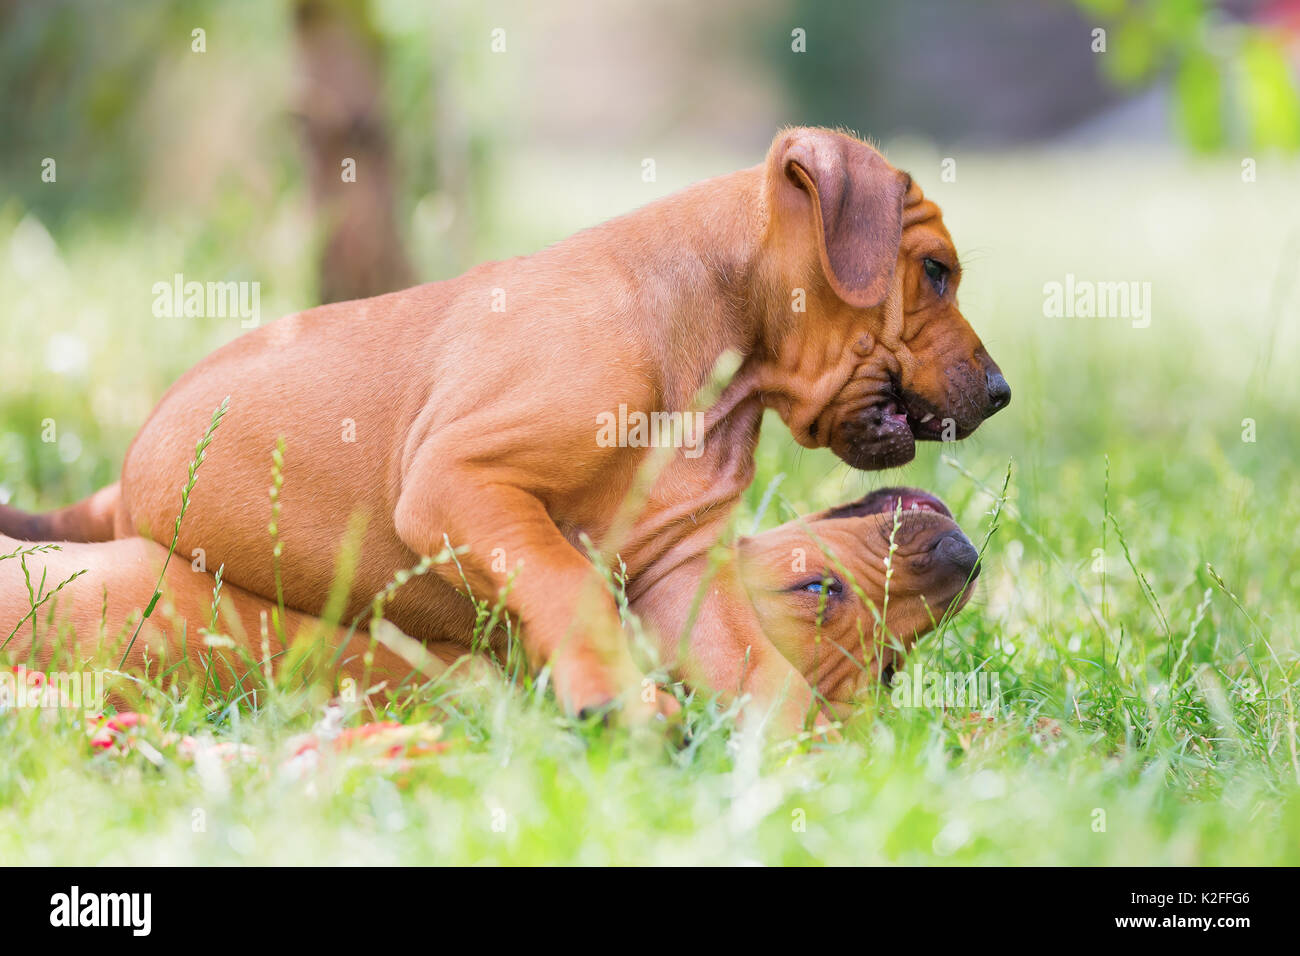 Puppies Playing Together Stock Photos & Puppies Playing